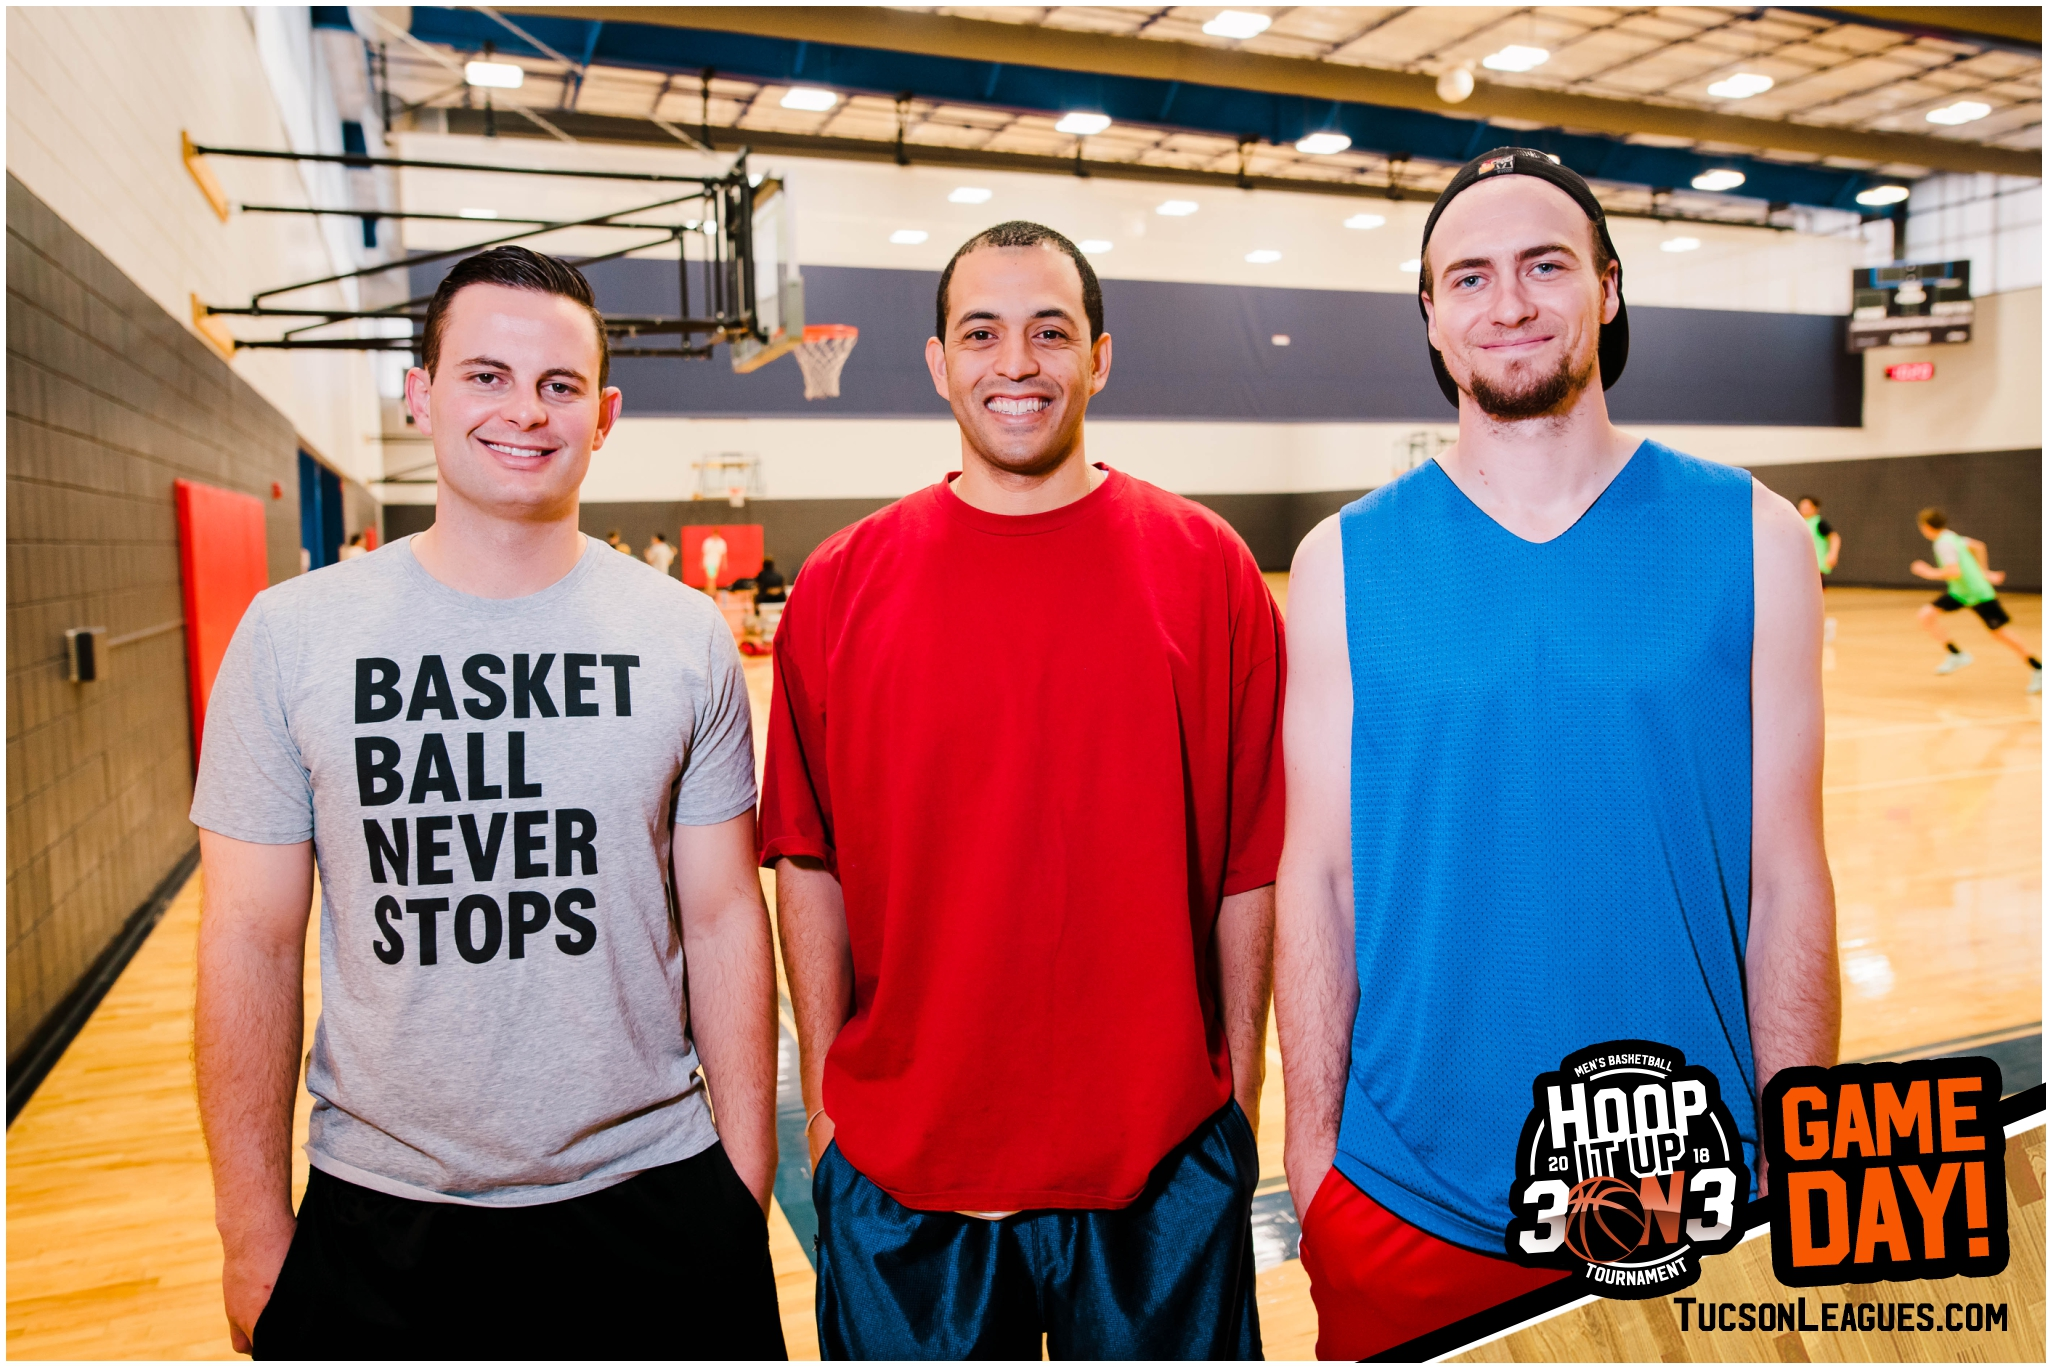 Mar 10th Hoop it Up 3 on 3 Men's Basketball Tournament - Gold, Team: Apex